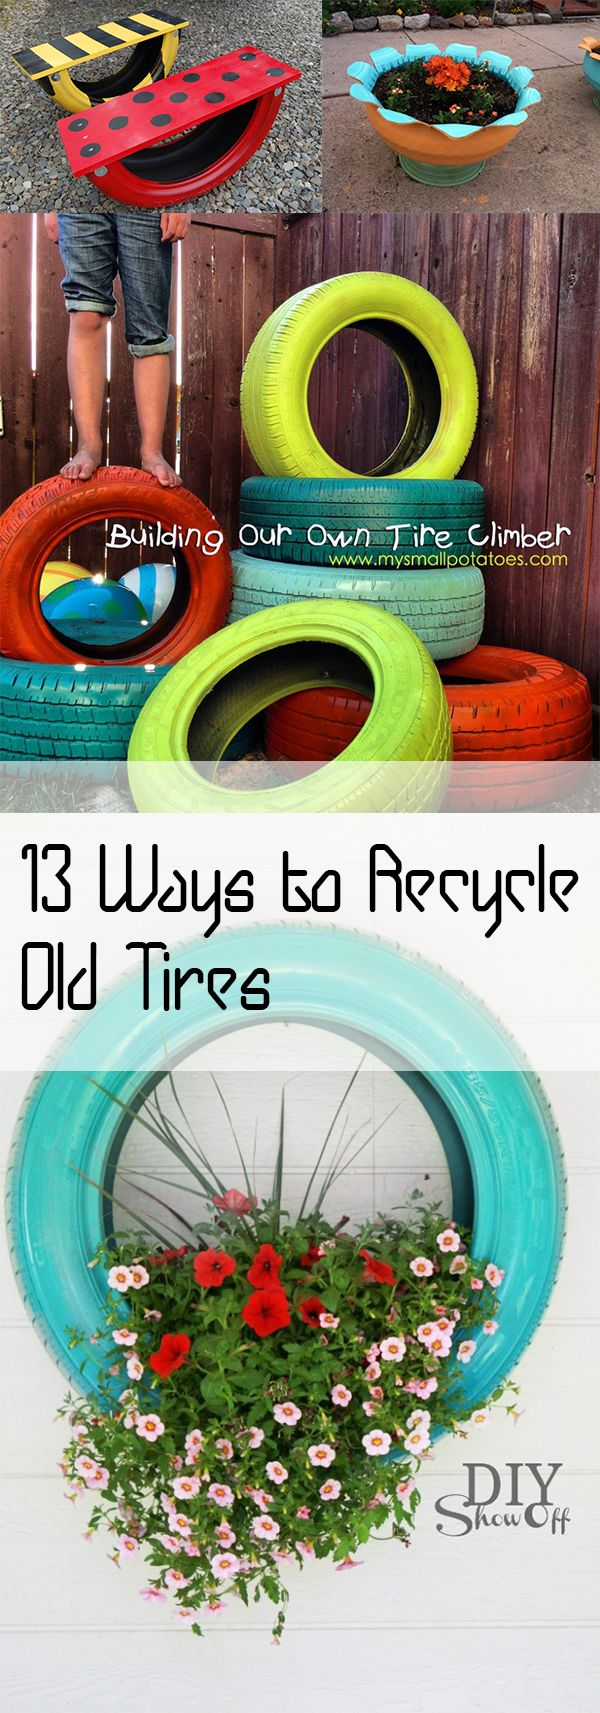 13 ways to recycle old tires fler id er om for Homemade recycling projects